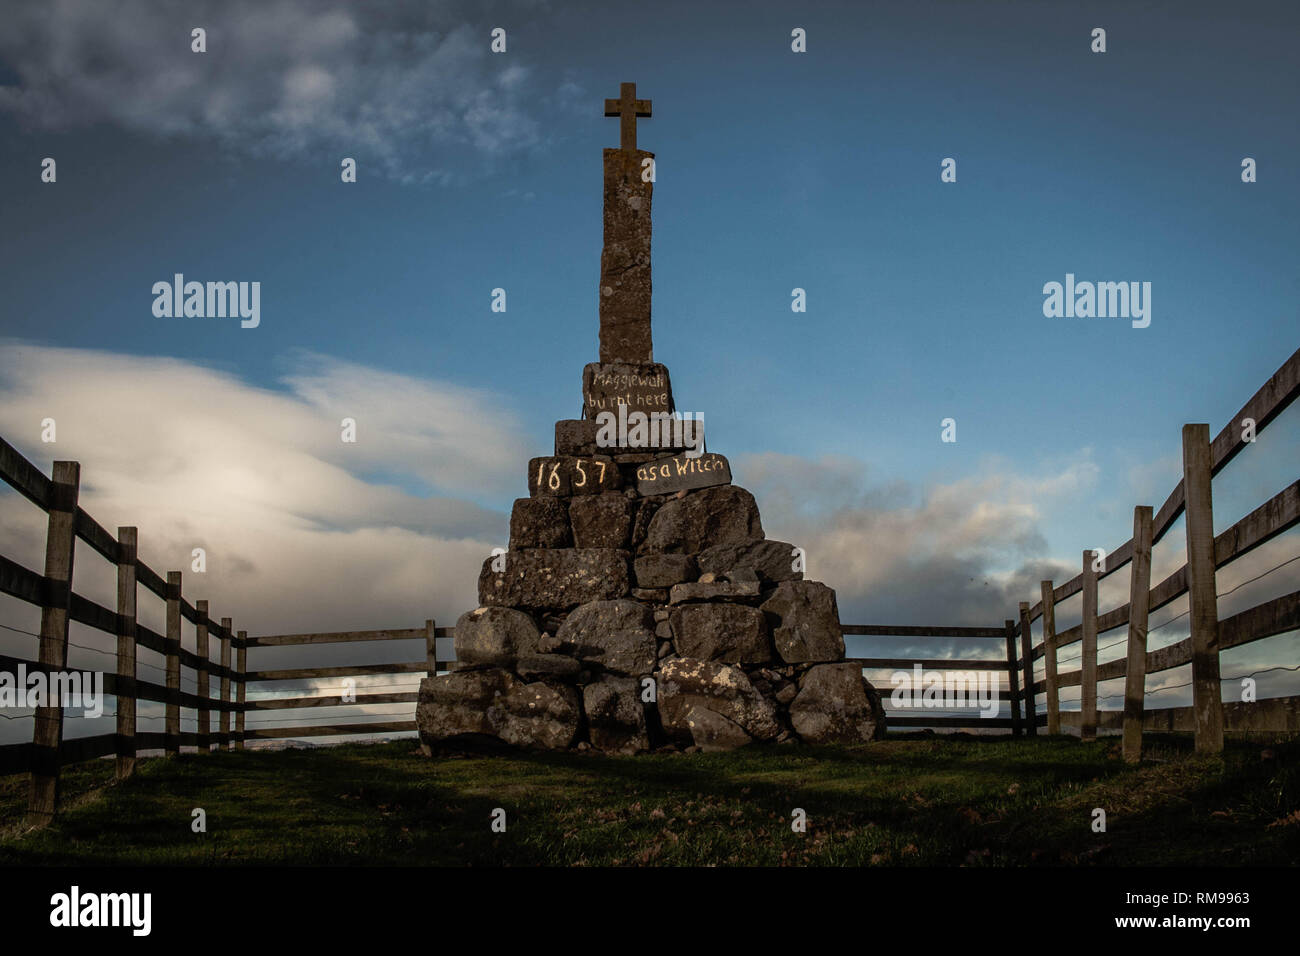 Maggie Wall Memorial, Dunning, Perthshire, Scotland Stock Photo